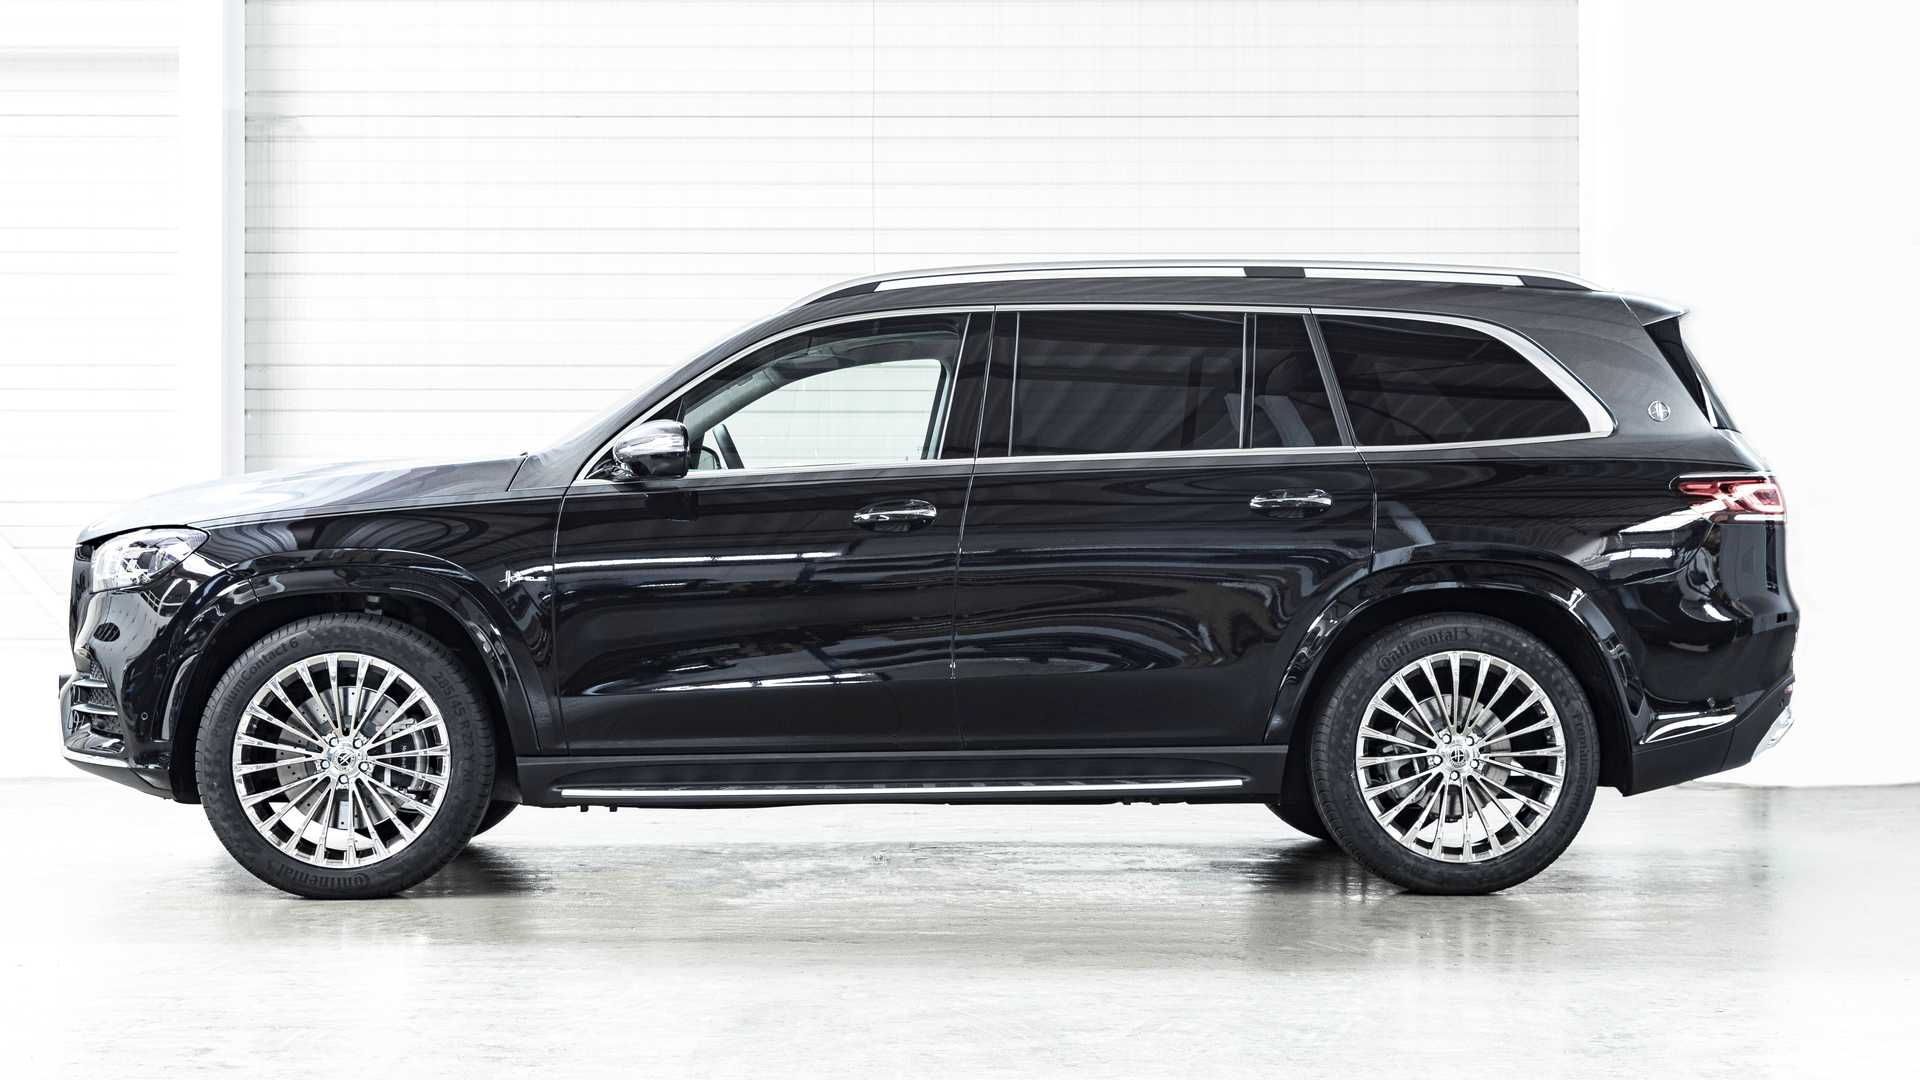 Ultimate HGLS Mercedes GLS Hofele